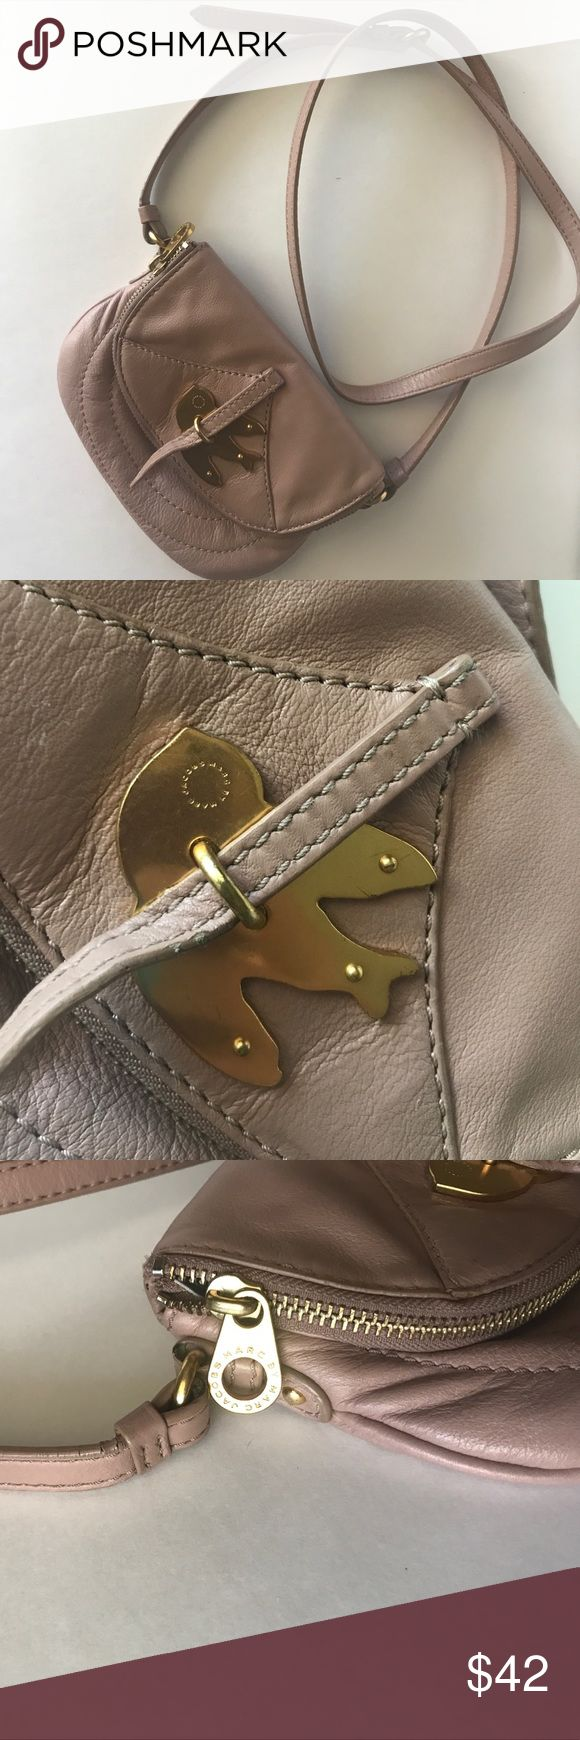 Marc by Marc Jacobs bird crossbody purse bag Great condition, Authentic Marc by Marc Jacobs bird crossbody handbag. Marc By Marc Jacobs Bags Crossbody Bags